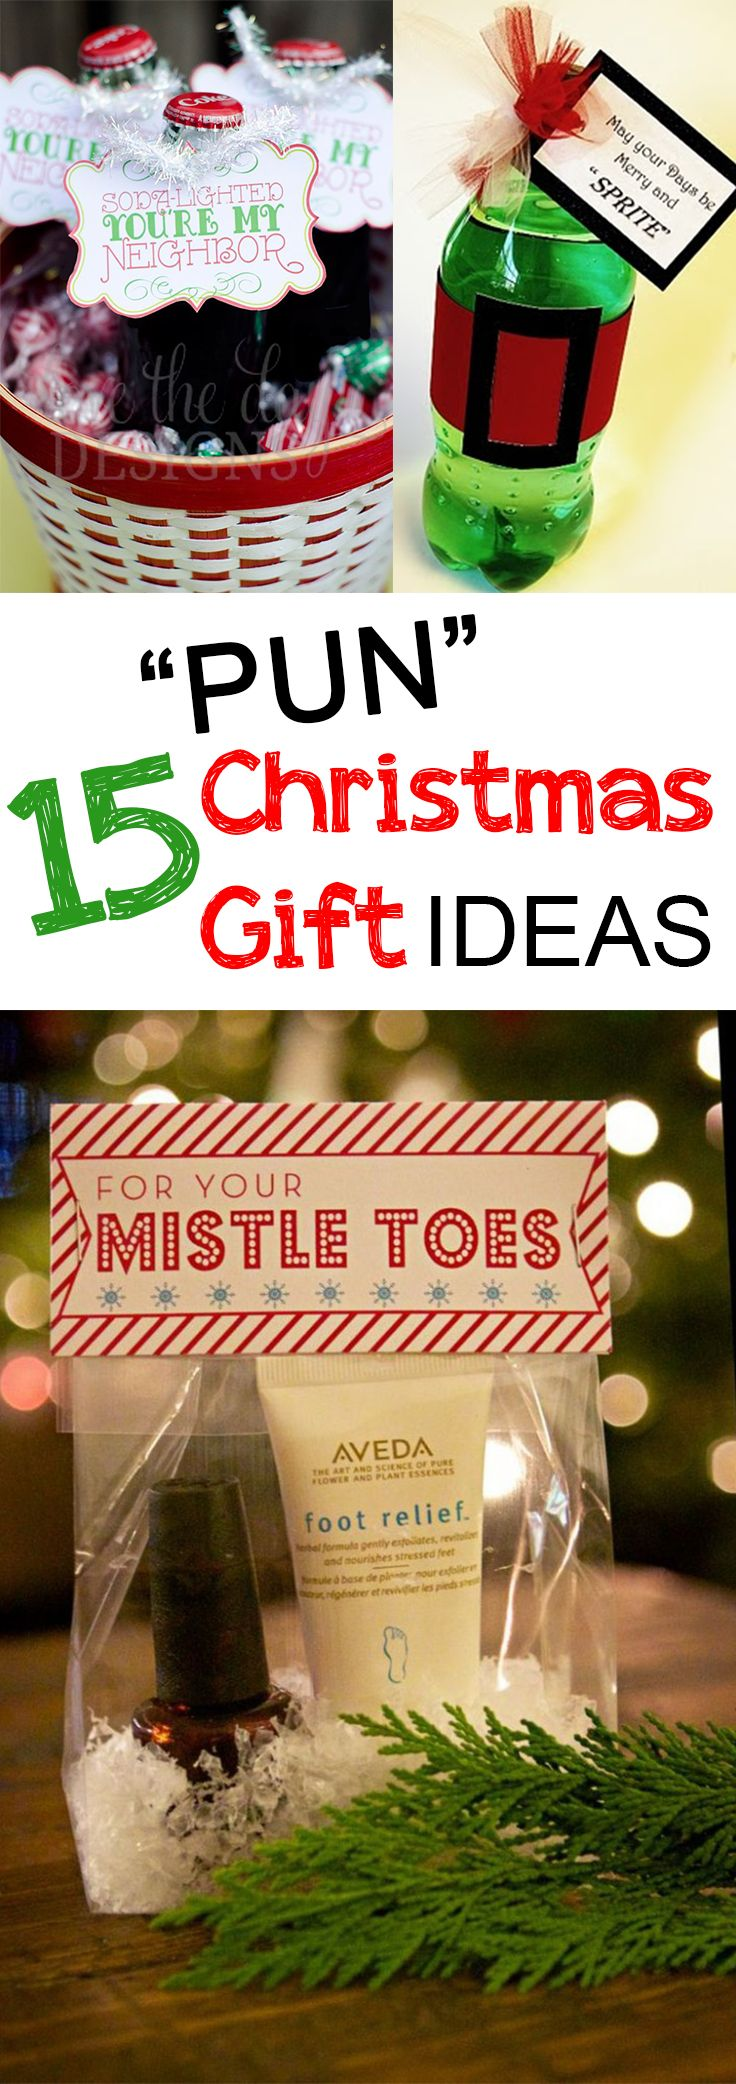 Punny Christmas Gift Ideas perfect for friends, neighbors, teachers and more!